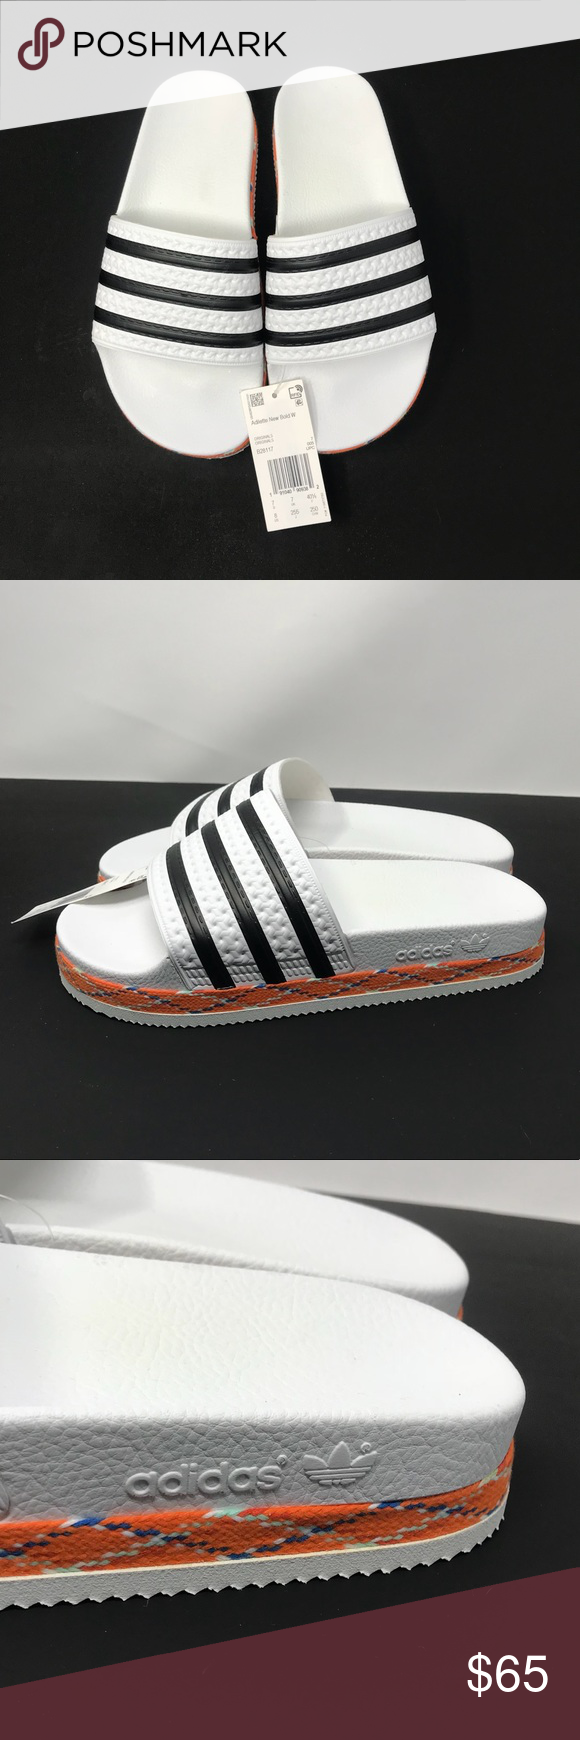 """20c604562 Adidas Slides Brand new. Adidas platform slides. Women s size 8. Platform  height about 1.5"""" Box not included. adidas Shoes Sandals"""